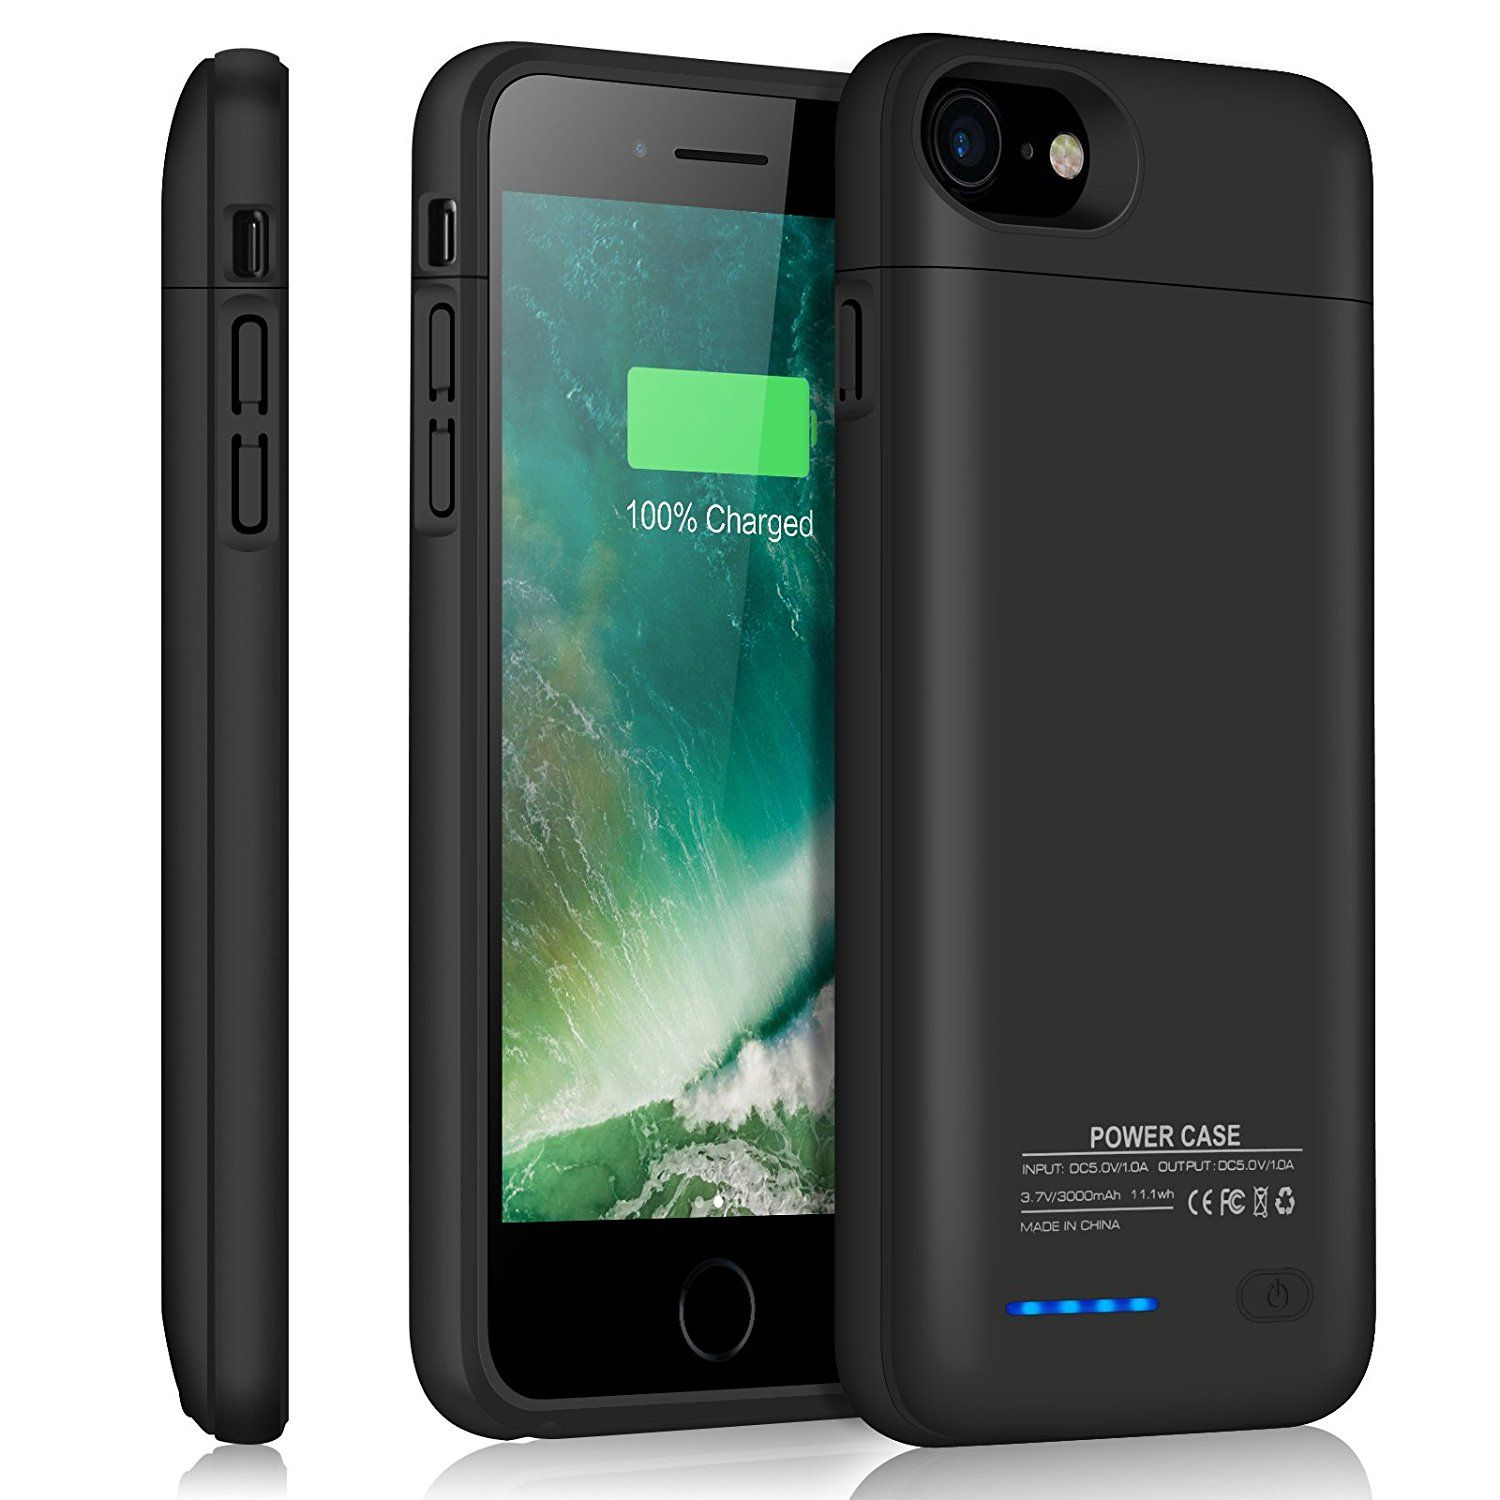 Iphone 7 8 battery caseiphone 6 6s battery casejuboty